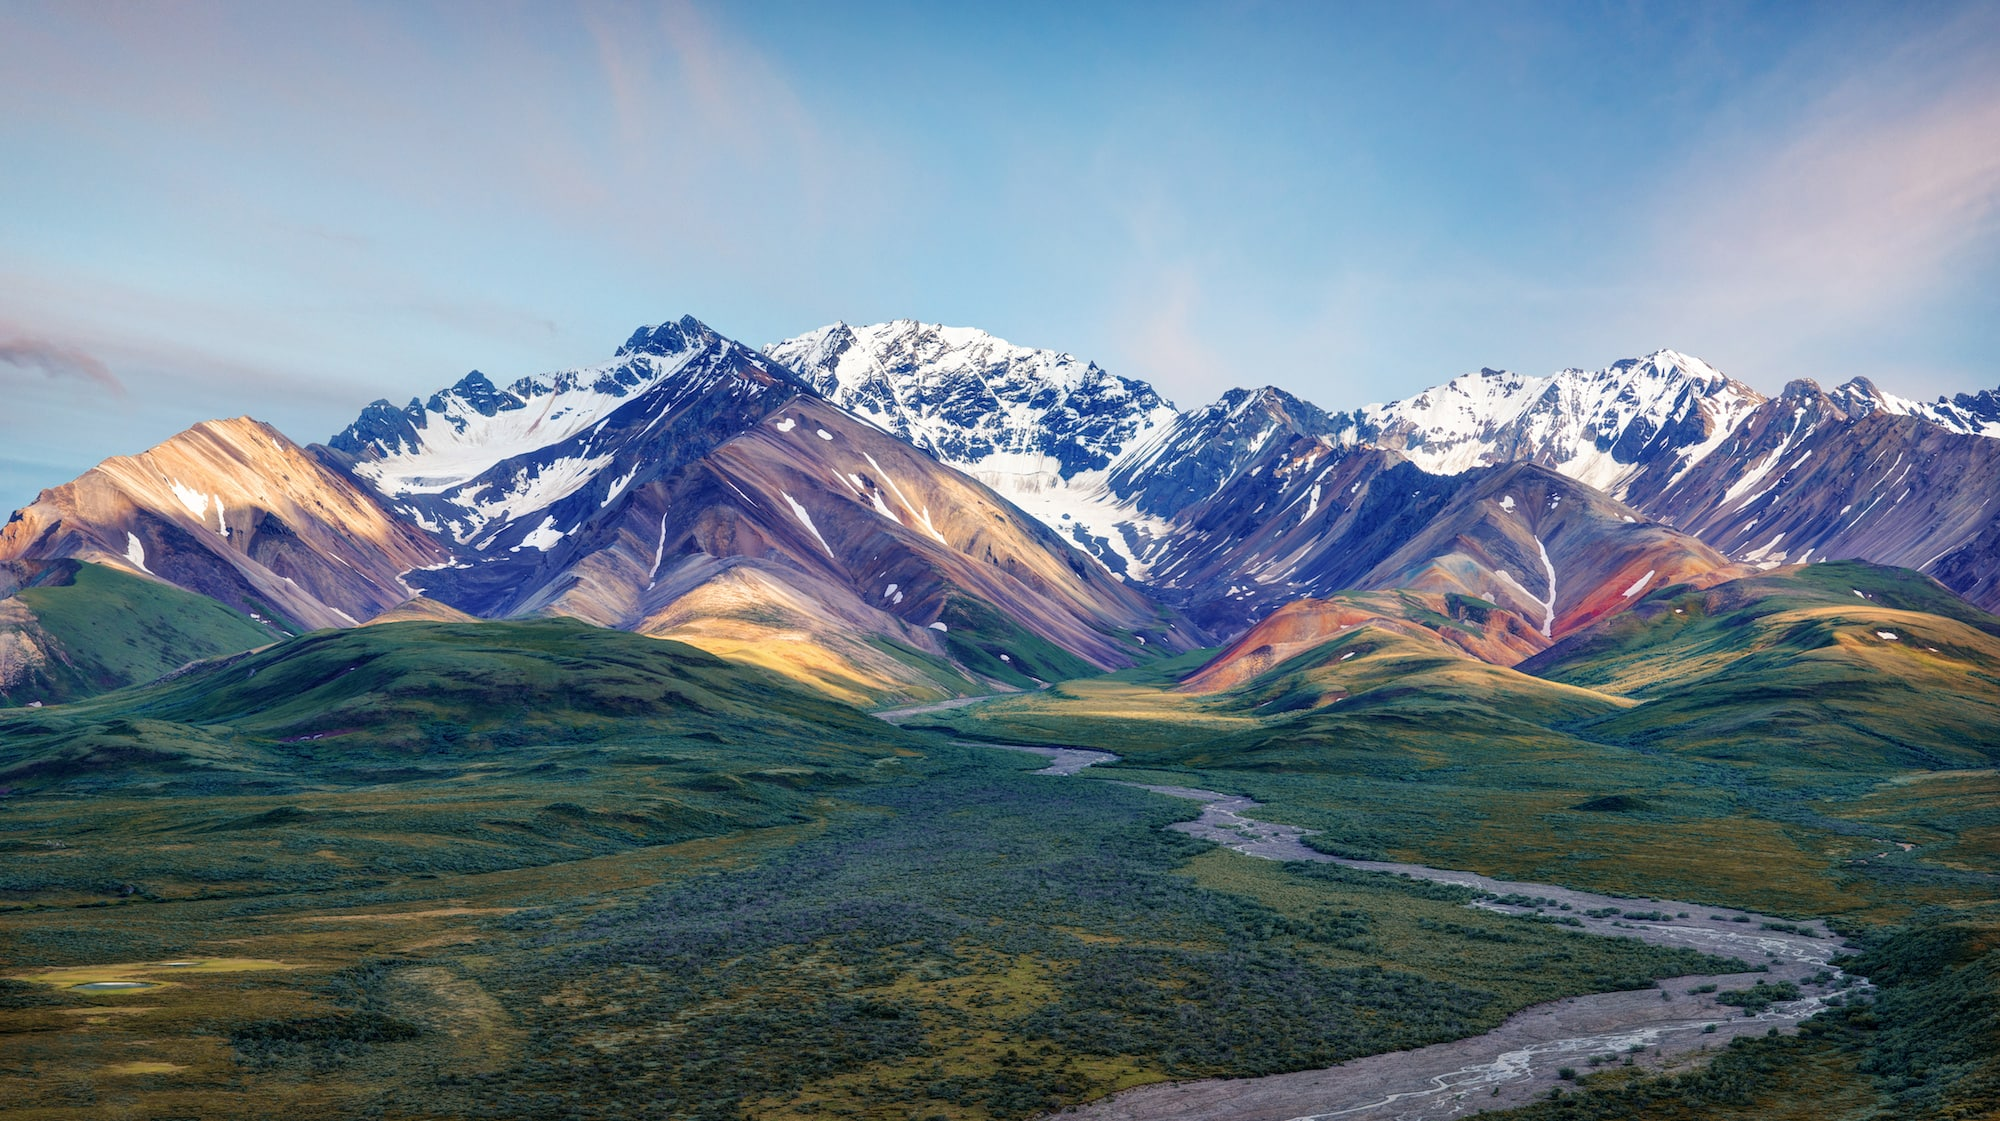 Denali National Park makes the roundup of 14 amazing domestic & international travel destinations at the top of our adventure bucketlist for 2019.